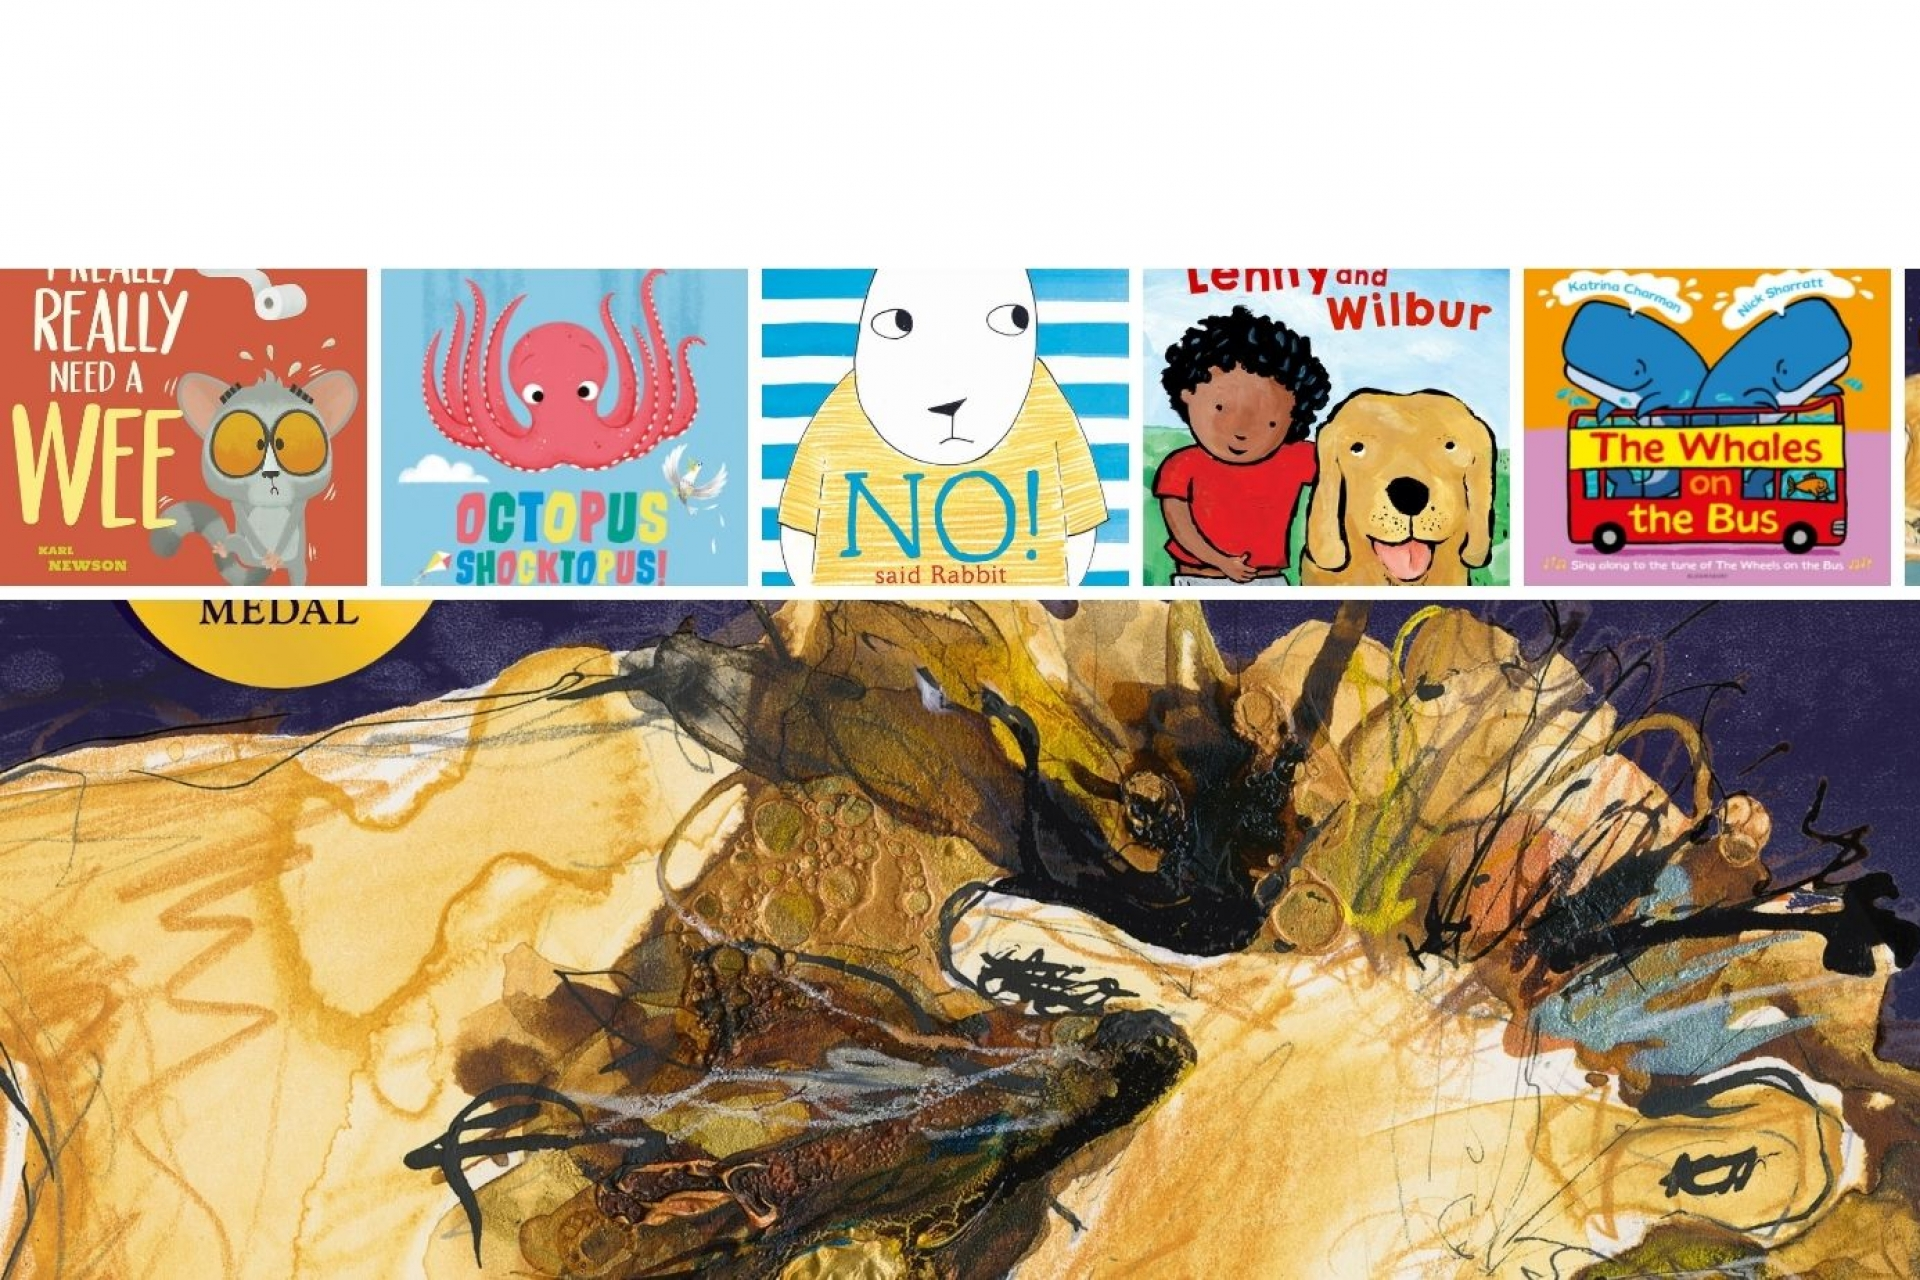 Booktrust Storytime announces the shortlist of best books for sharing with babies and children under 5